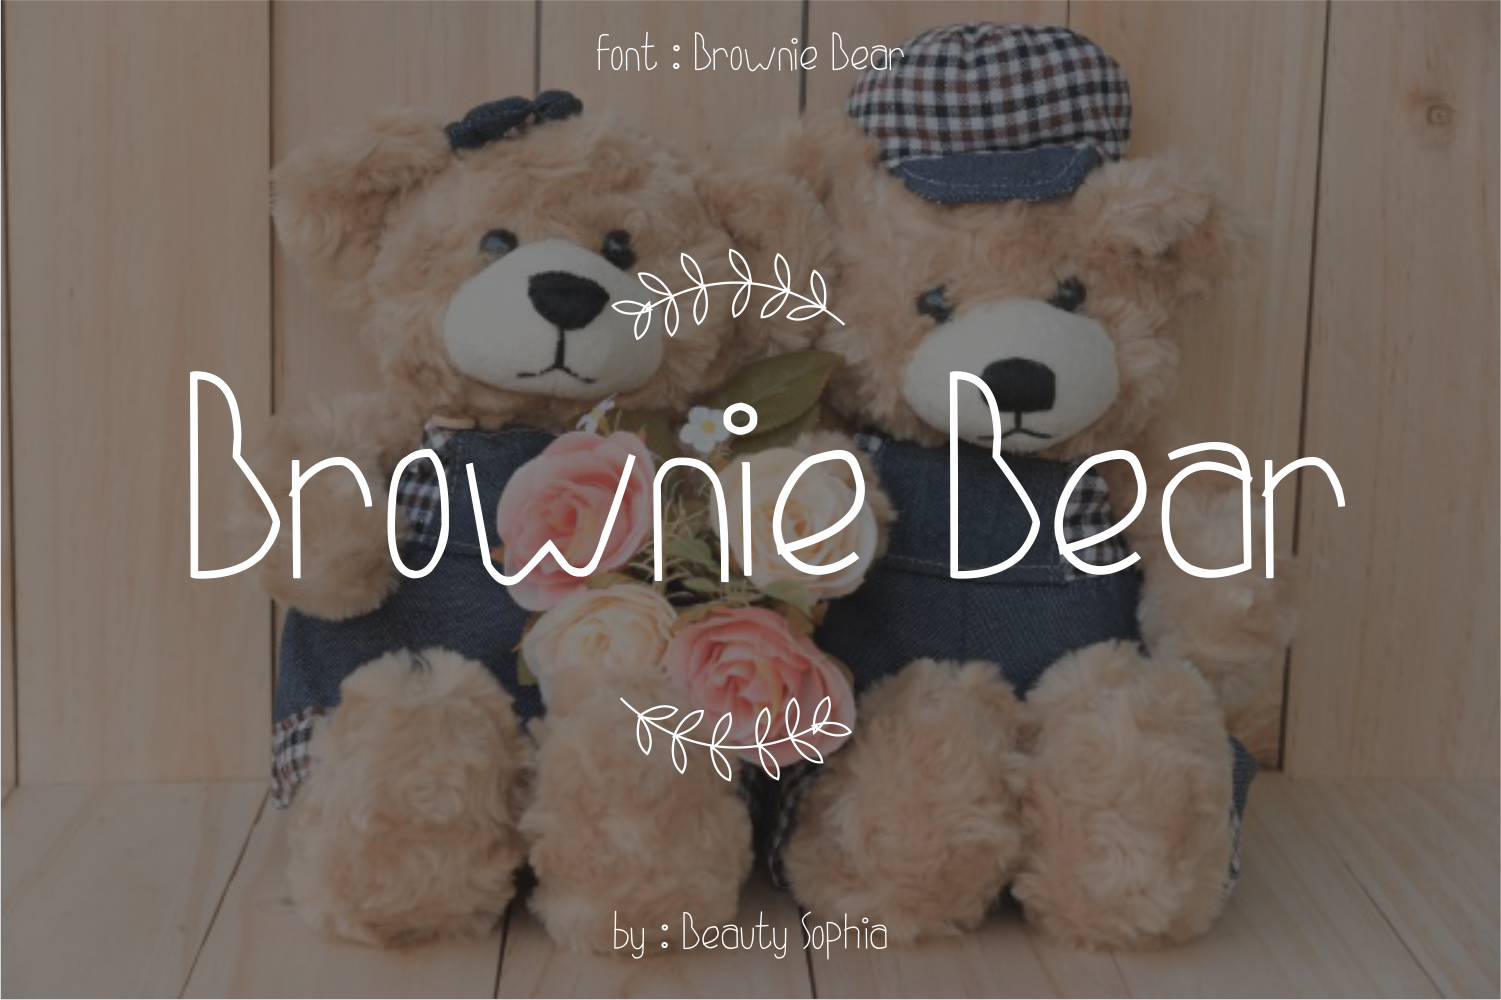 Brownie Bear Font By beautysophia